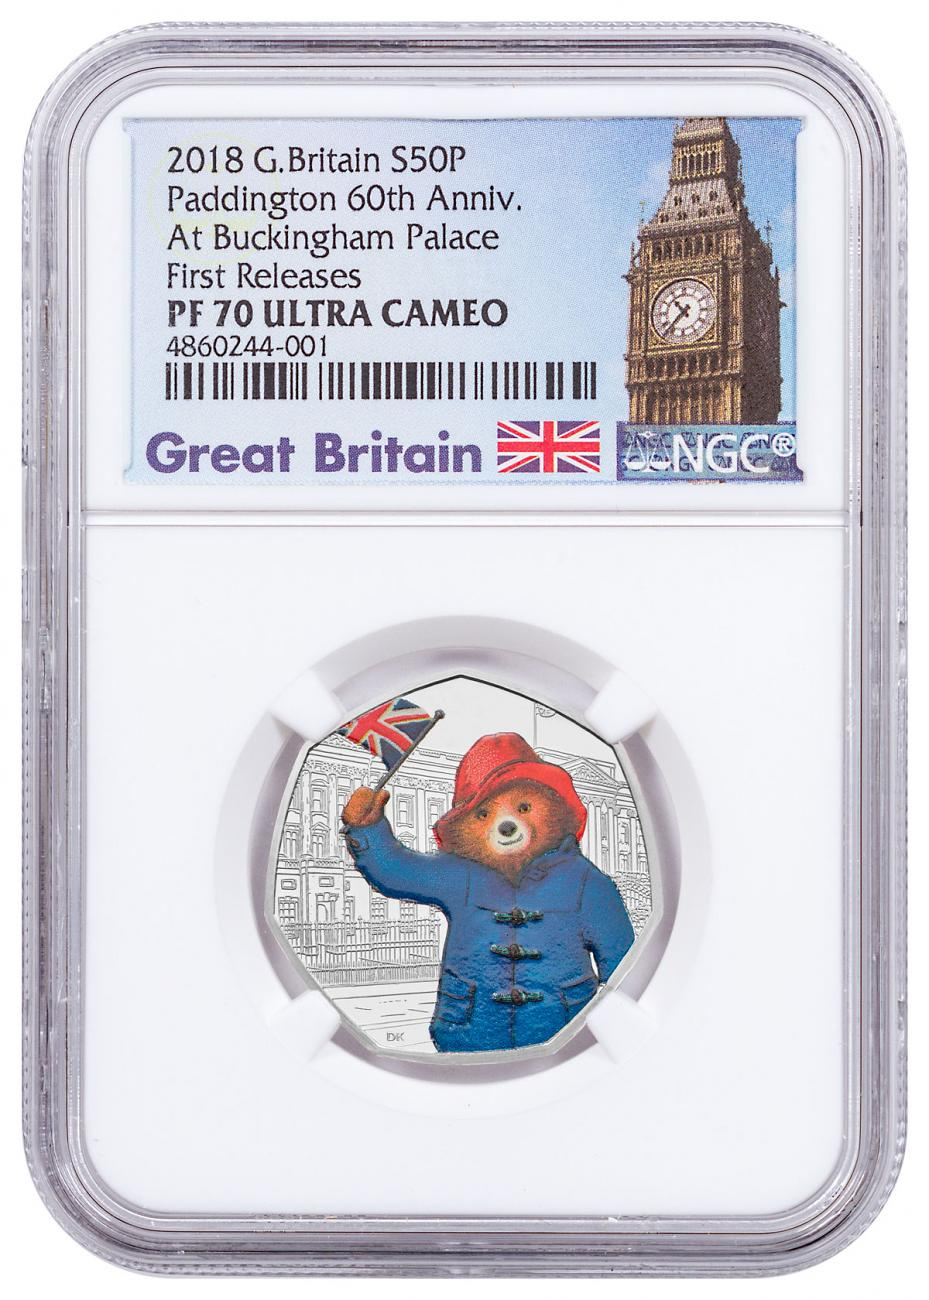 2018 Great Britain Paddington Bear - At Buckingham Palace 8 g Silver Proof 50p Coin NGC PF70 UC FR Exclusive Big Ben Label